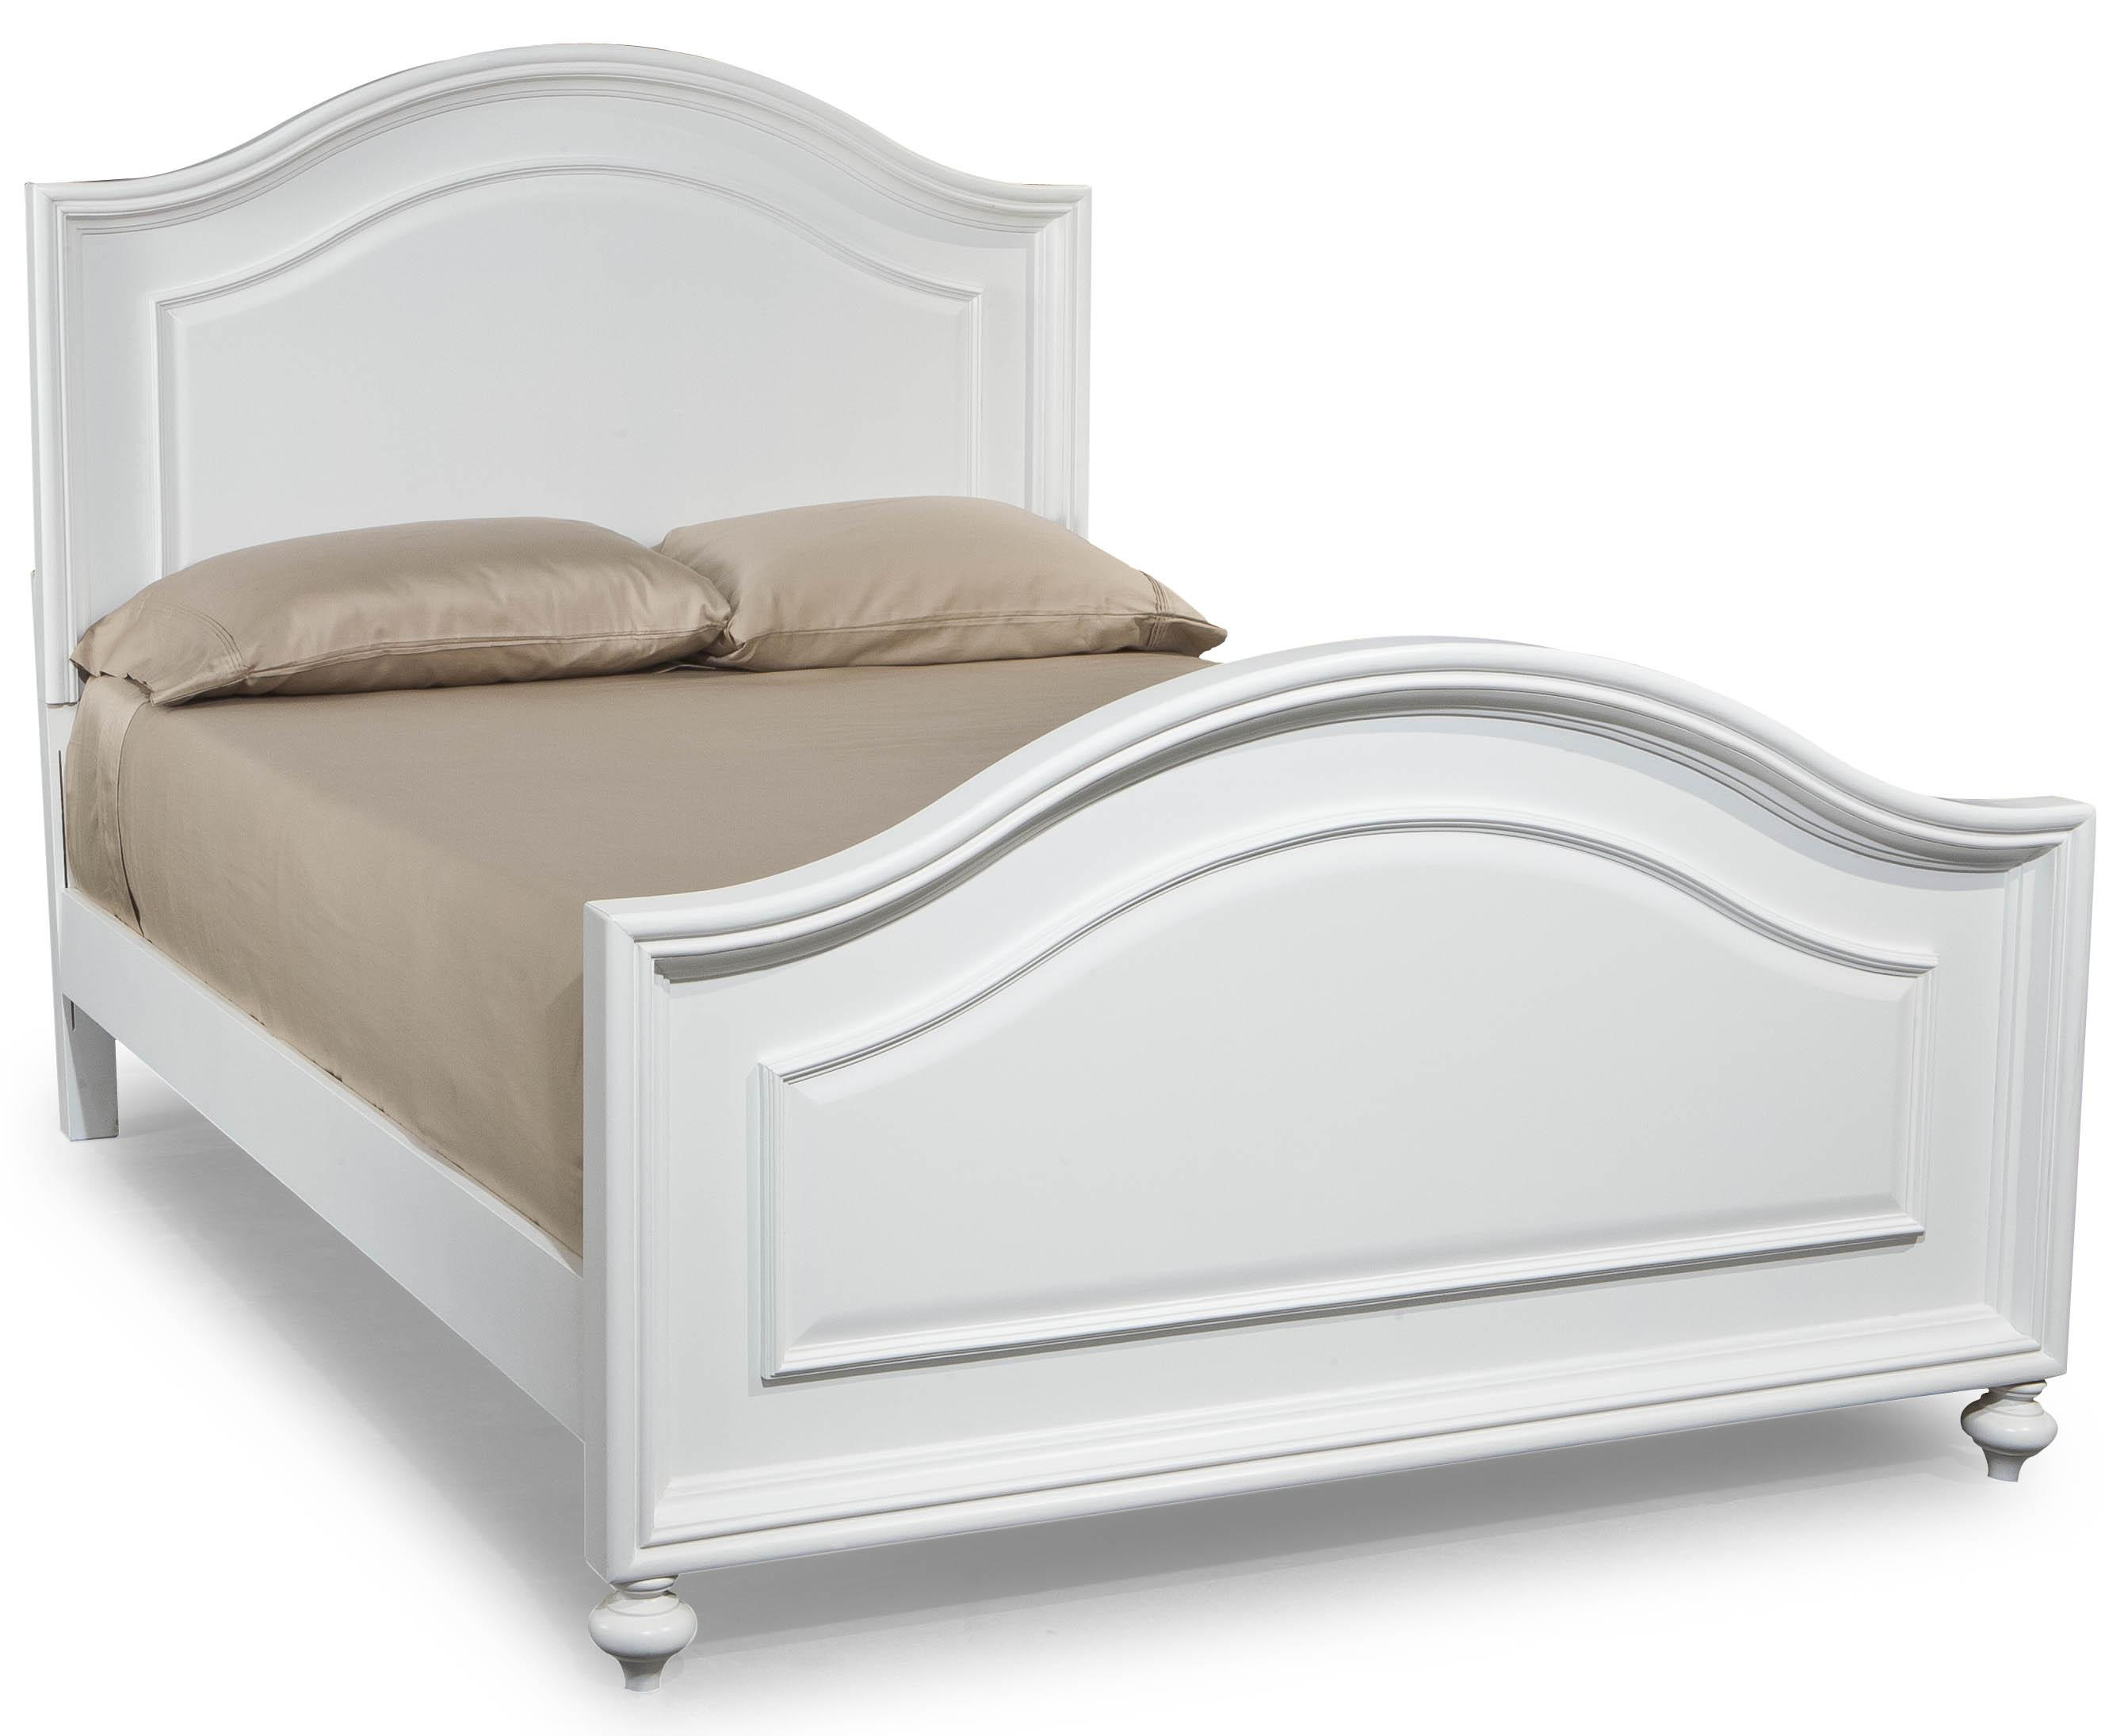 Legacy classic kids madison full size panel bed with for Legacy classic bed